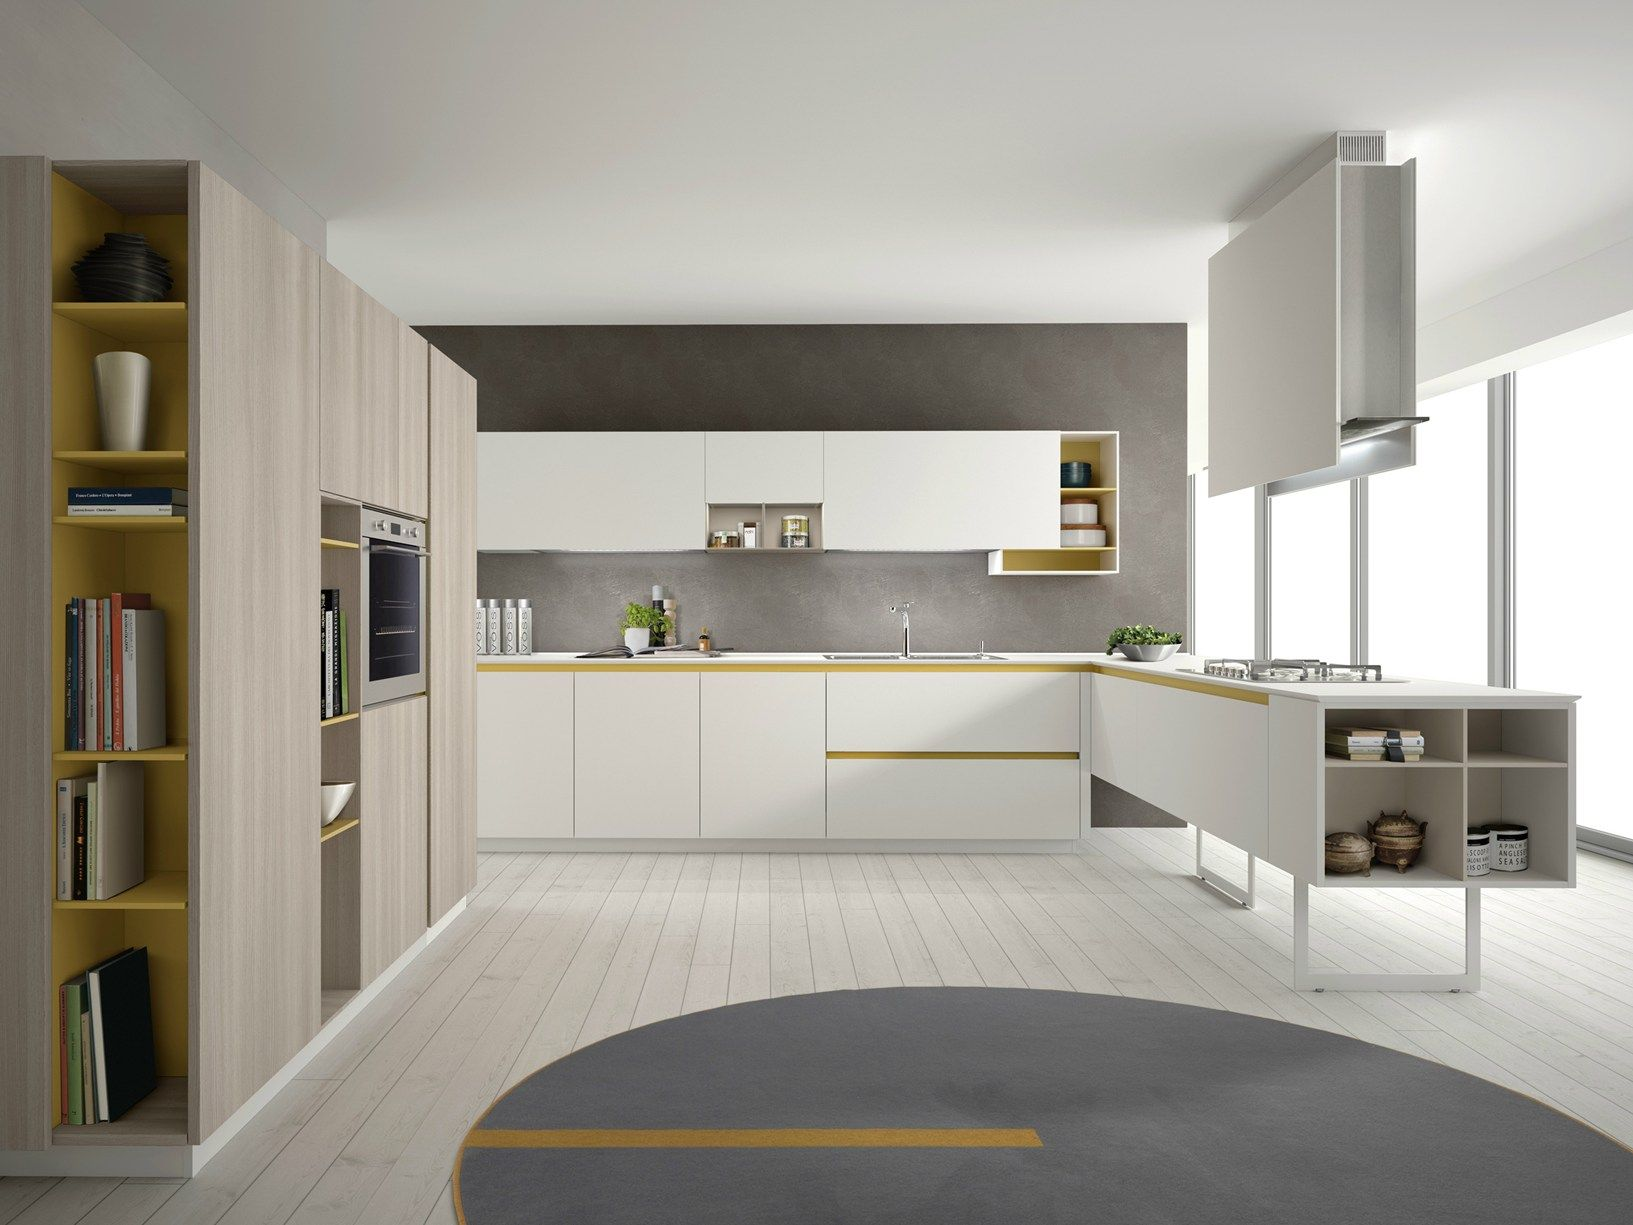 euromobil group presents the 'total home' at isaloni 2014 - Cucina Euromobil